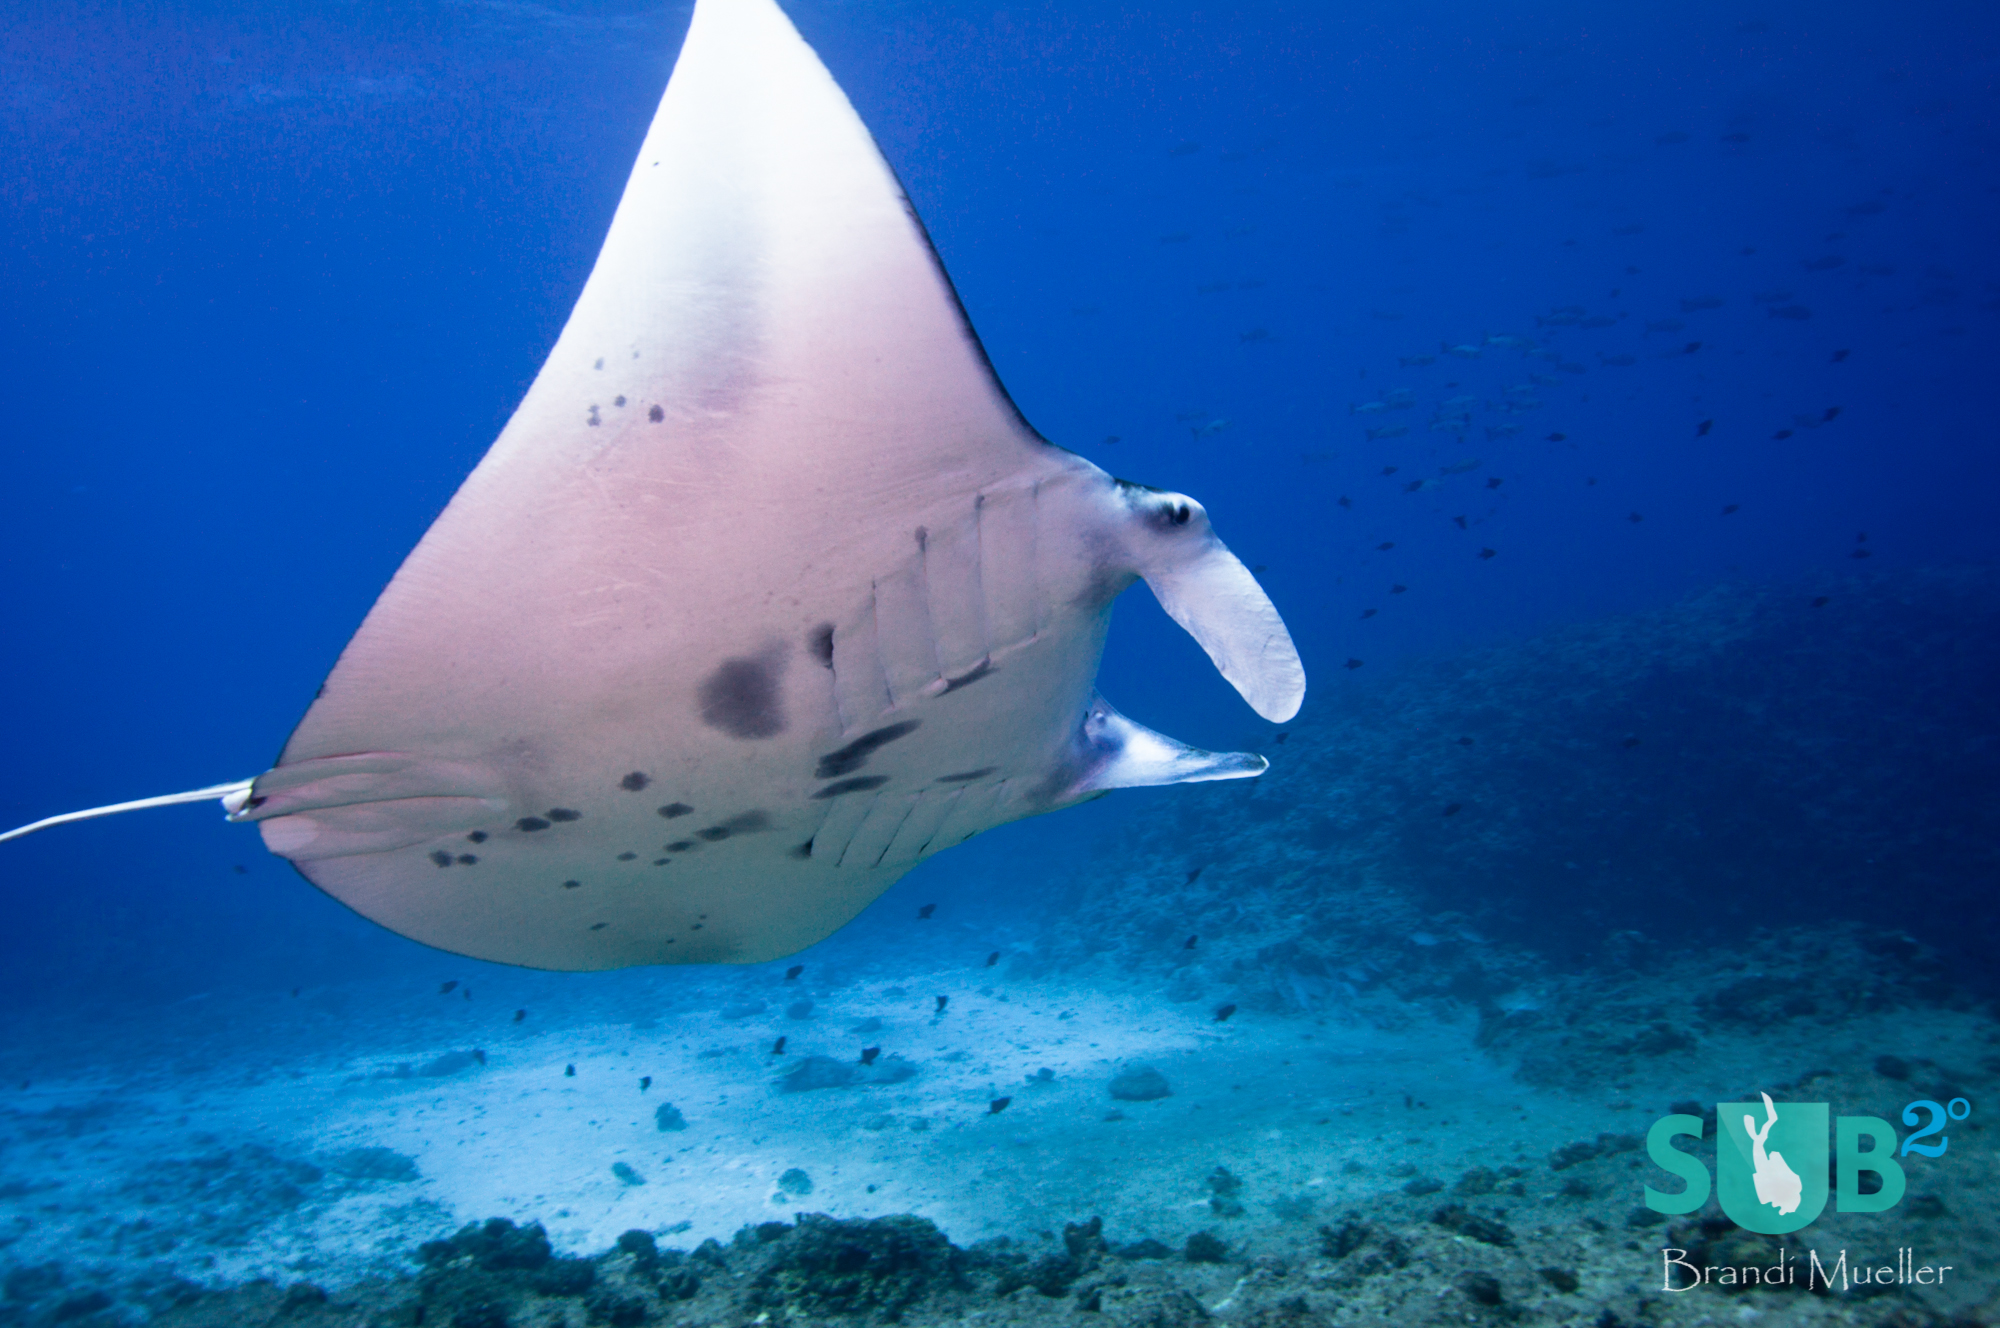 Manta's often are found at German Channel being cleaned by small wrasses.